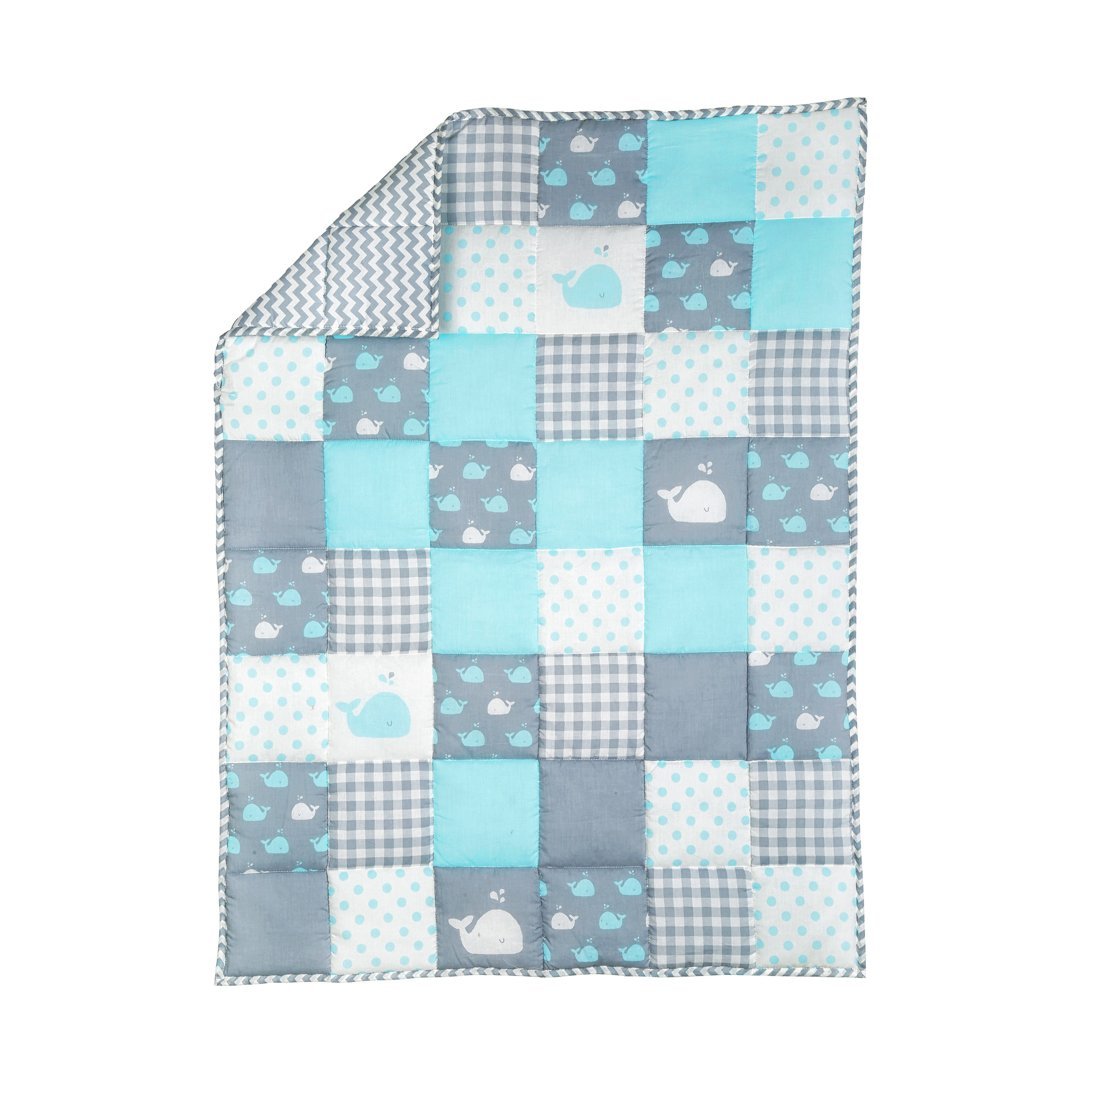 Plush Toddler Blanket - Soft Cot Comforter for Boys and Girls Pure Cotton Baby Cradle Quilt - Baby Blue - 38 X 50 Inches by RAJRANG BRINGING RAJASTHAN TO YOU